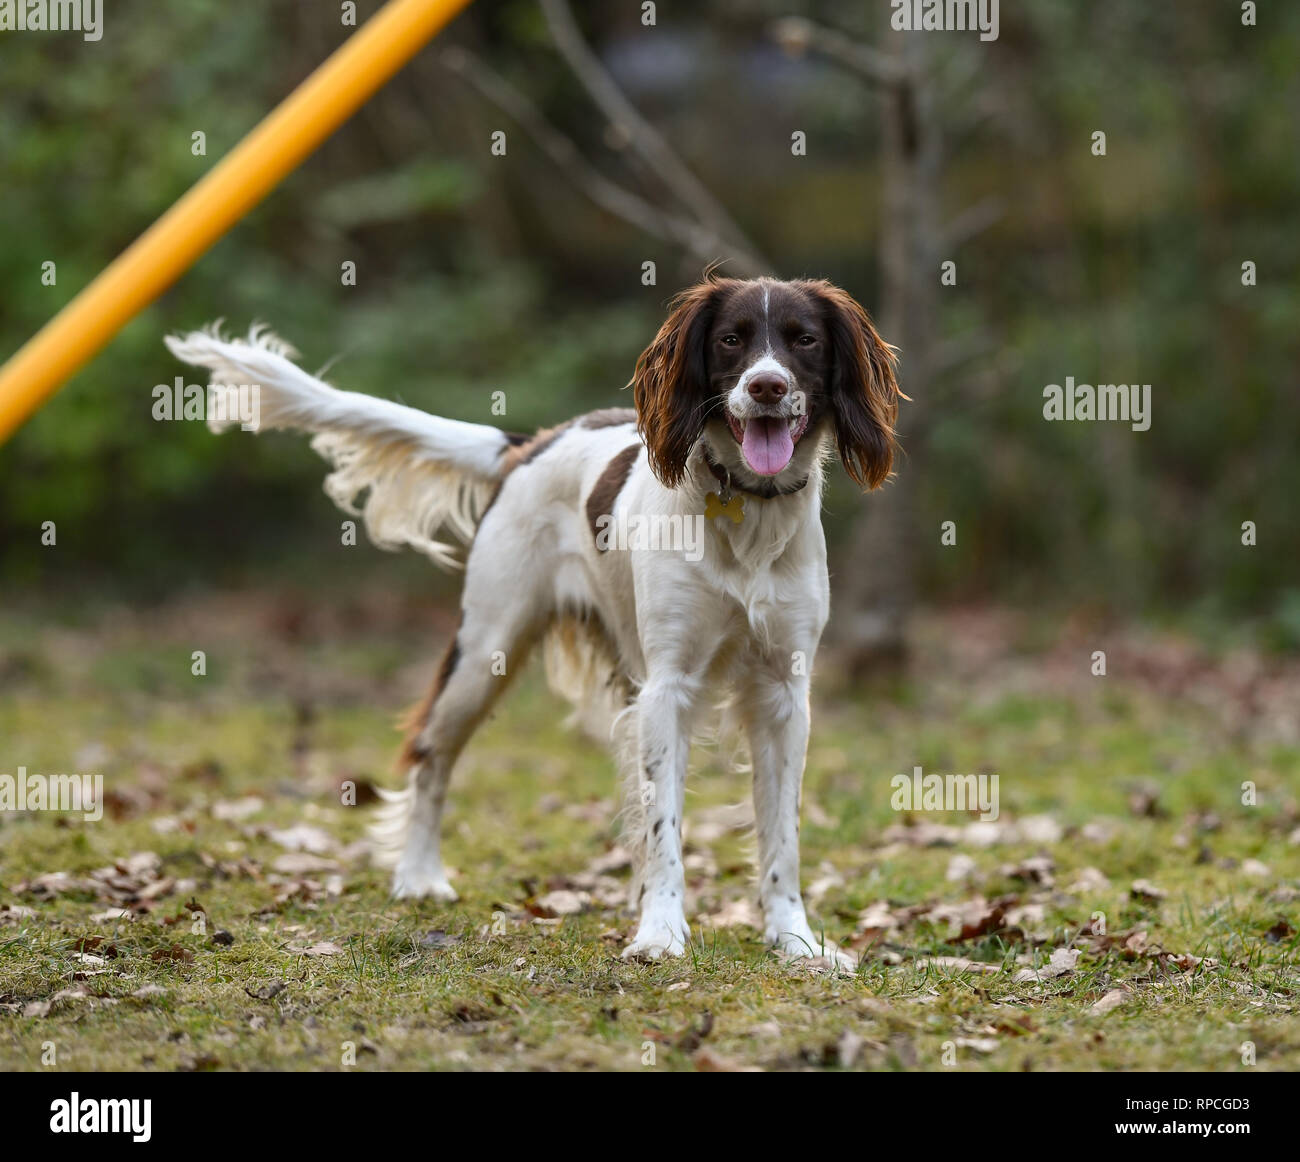 A happy and alert Young ( 1 Year old) English Springer Spaniel takes a break from agility and dummy training in green forest surroundings. Stock Photo